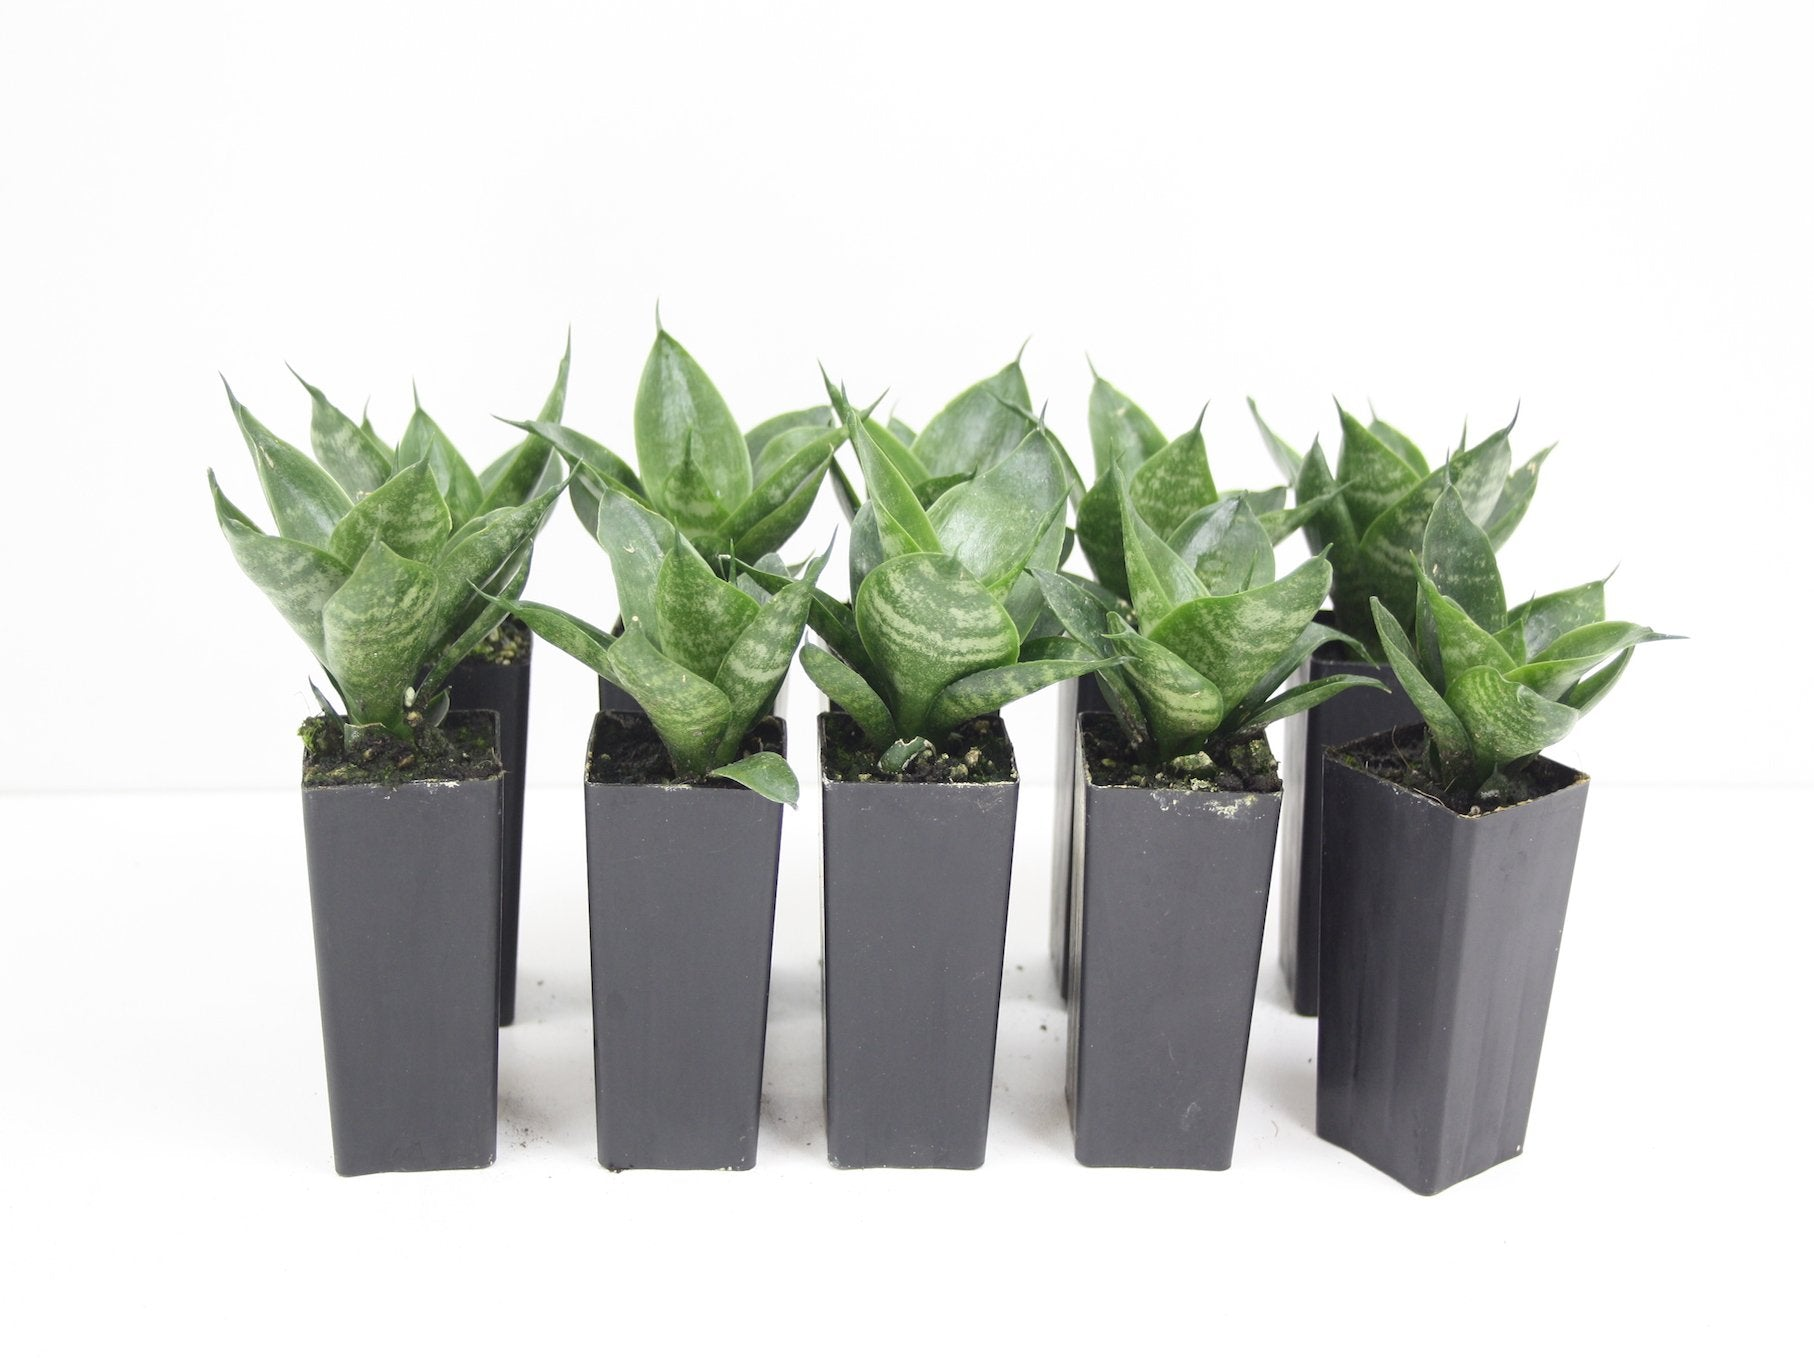 sansevieria dwarf dwarf mother in laws tongue drought tolerant plants in a box. Black Bedroom Furniture Sets. Home Design Ideas